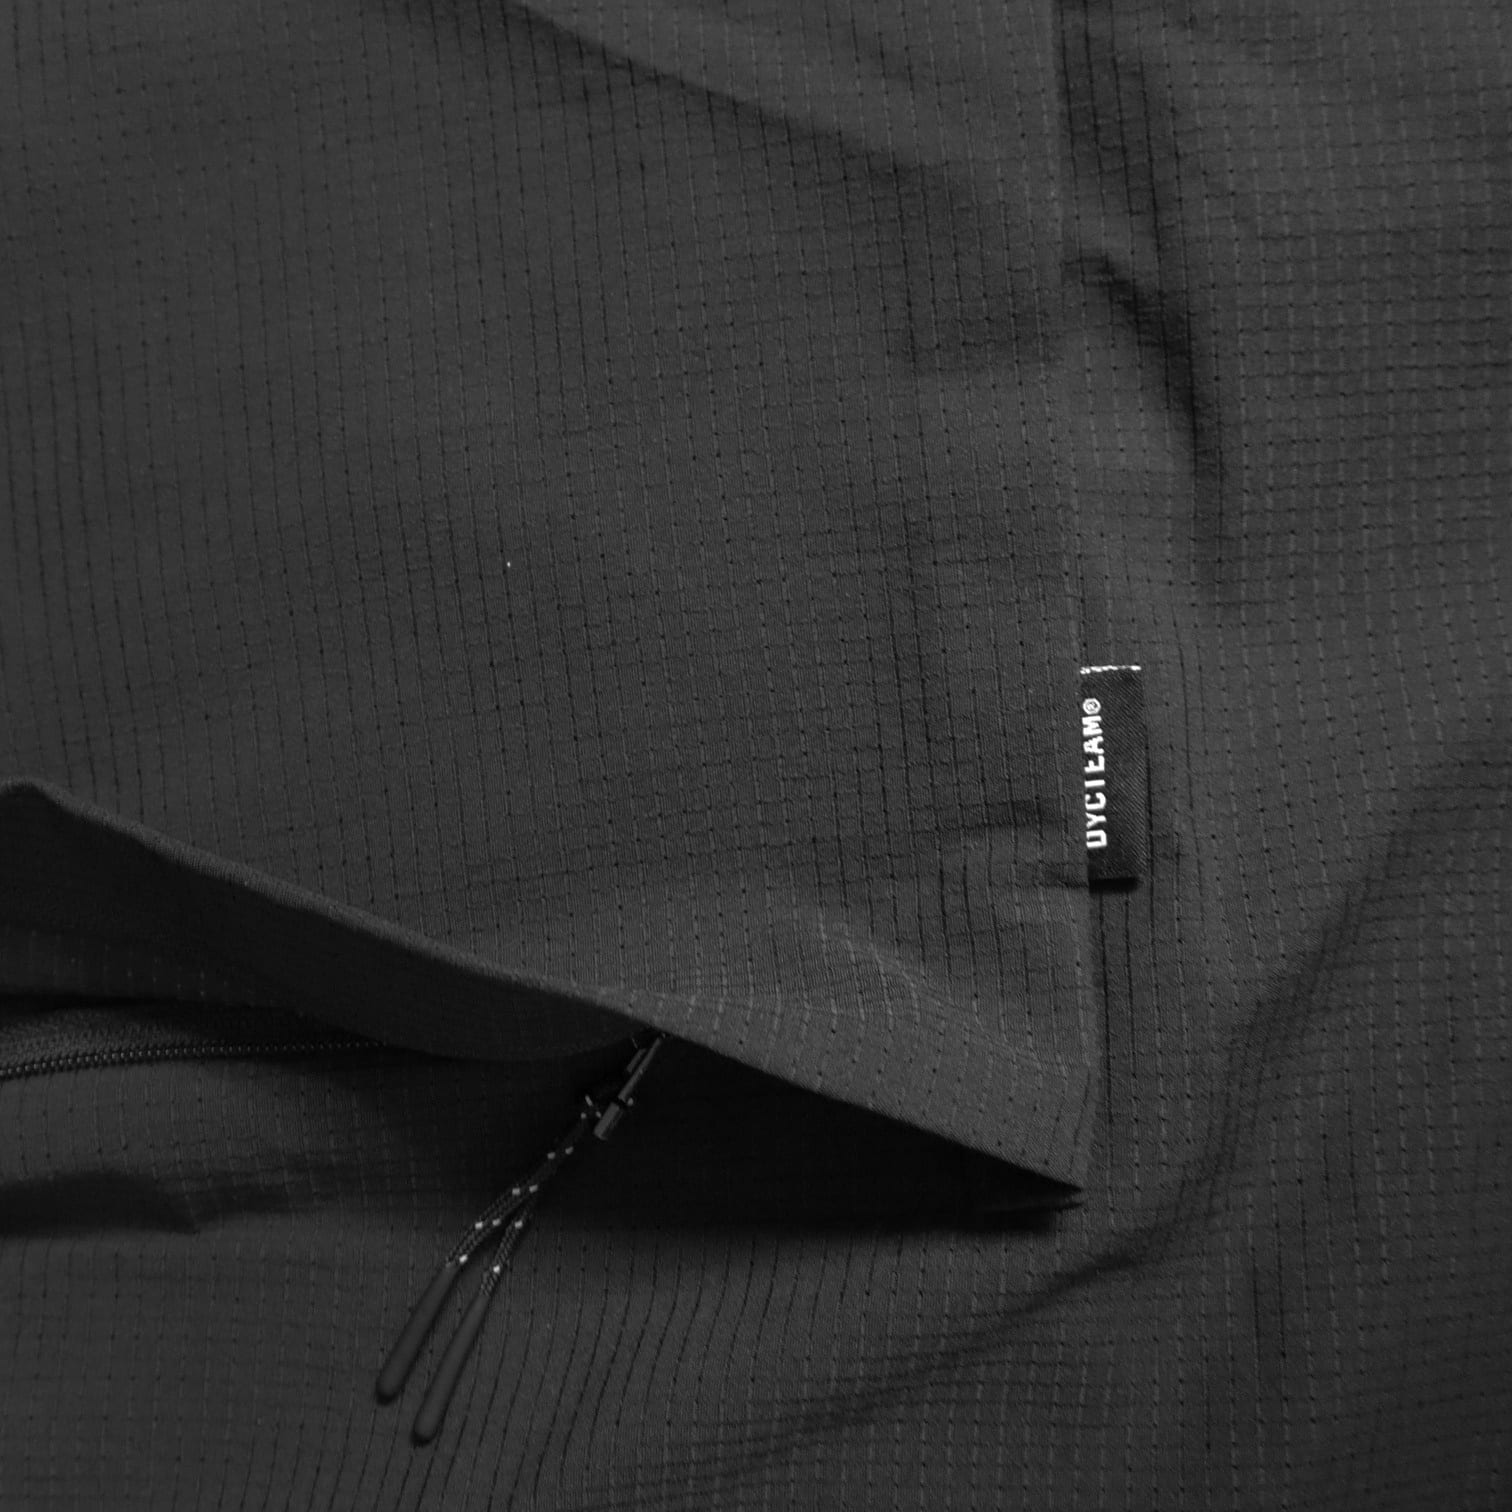 DYCTEAM-See-Through Trench Coat-Brand-Logo-Tag